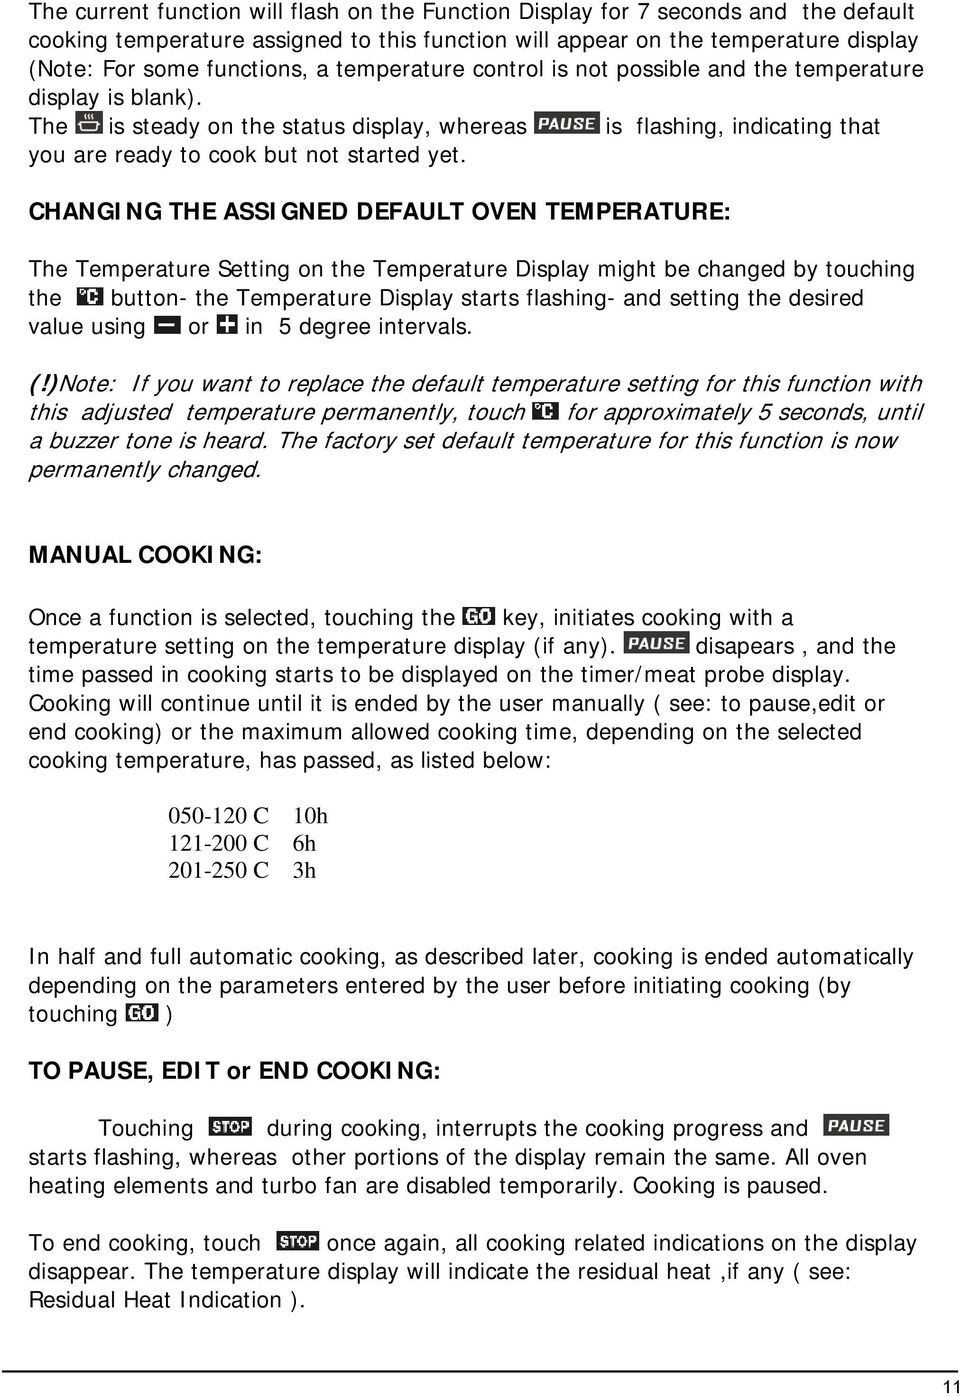 CHANGING THE ASSIGNED DEFAULT OVEN TEMPERATURE: The Temperature Setting on the Temperature Display might be changed by touching the button- the Temperature Display starts flashing- and setting the